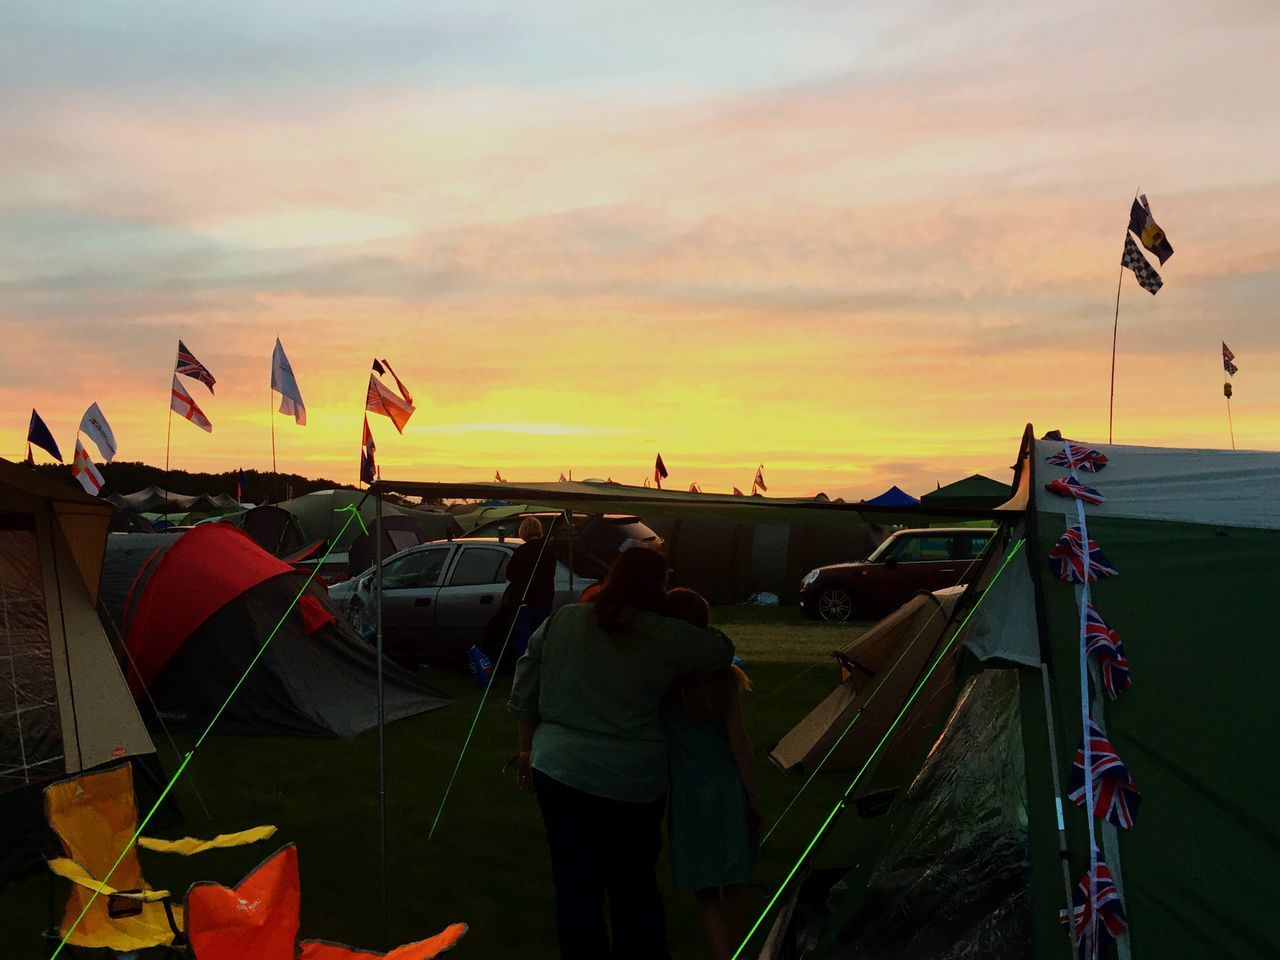 Live For The Story setting up camp for the weekend. Sunset Real People Flag Sunset Lifestyles Rear View Sky Leisure Activity Women Nature Cloud - Sky Outdoors Beauty In Nature Day People